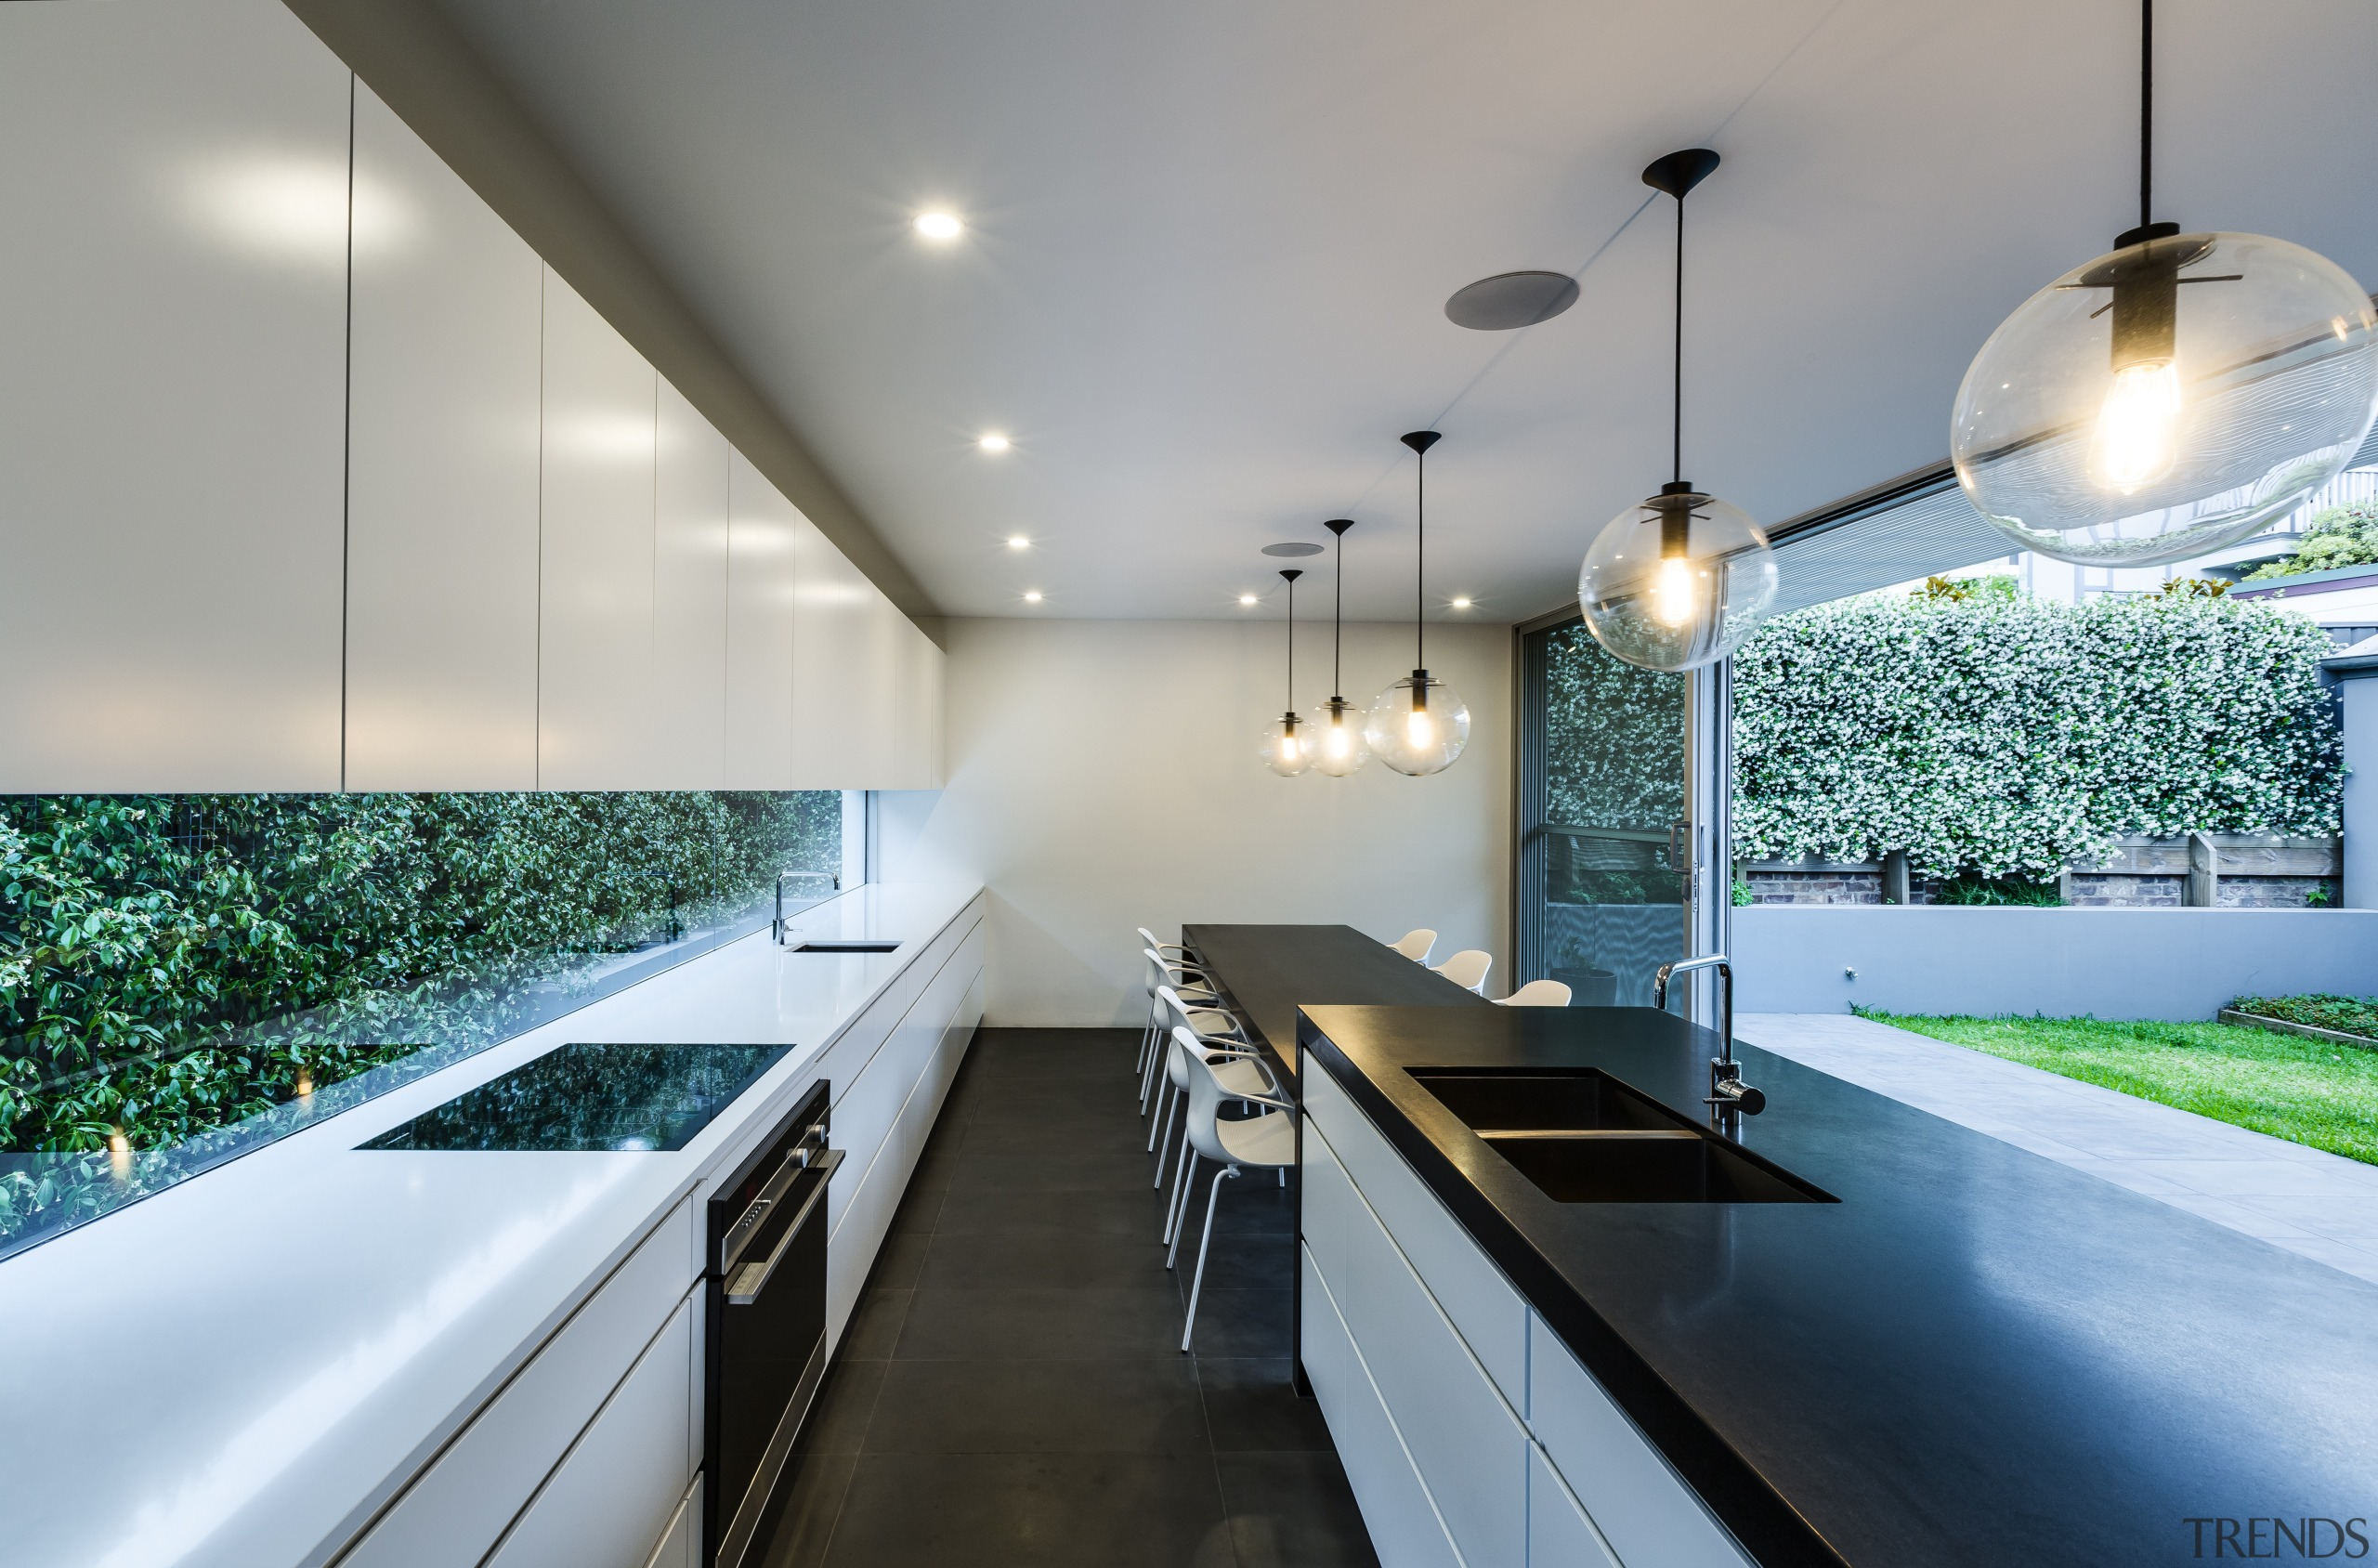 Parallel cabinets reinforce the strong horizontality of this architecture, ceiling, countertop, daylighting, house, interior design, kitchen, lighting, real estate, gray